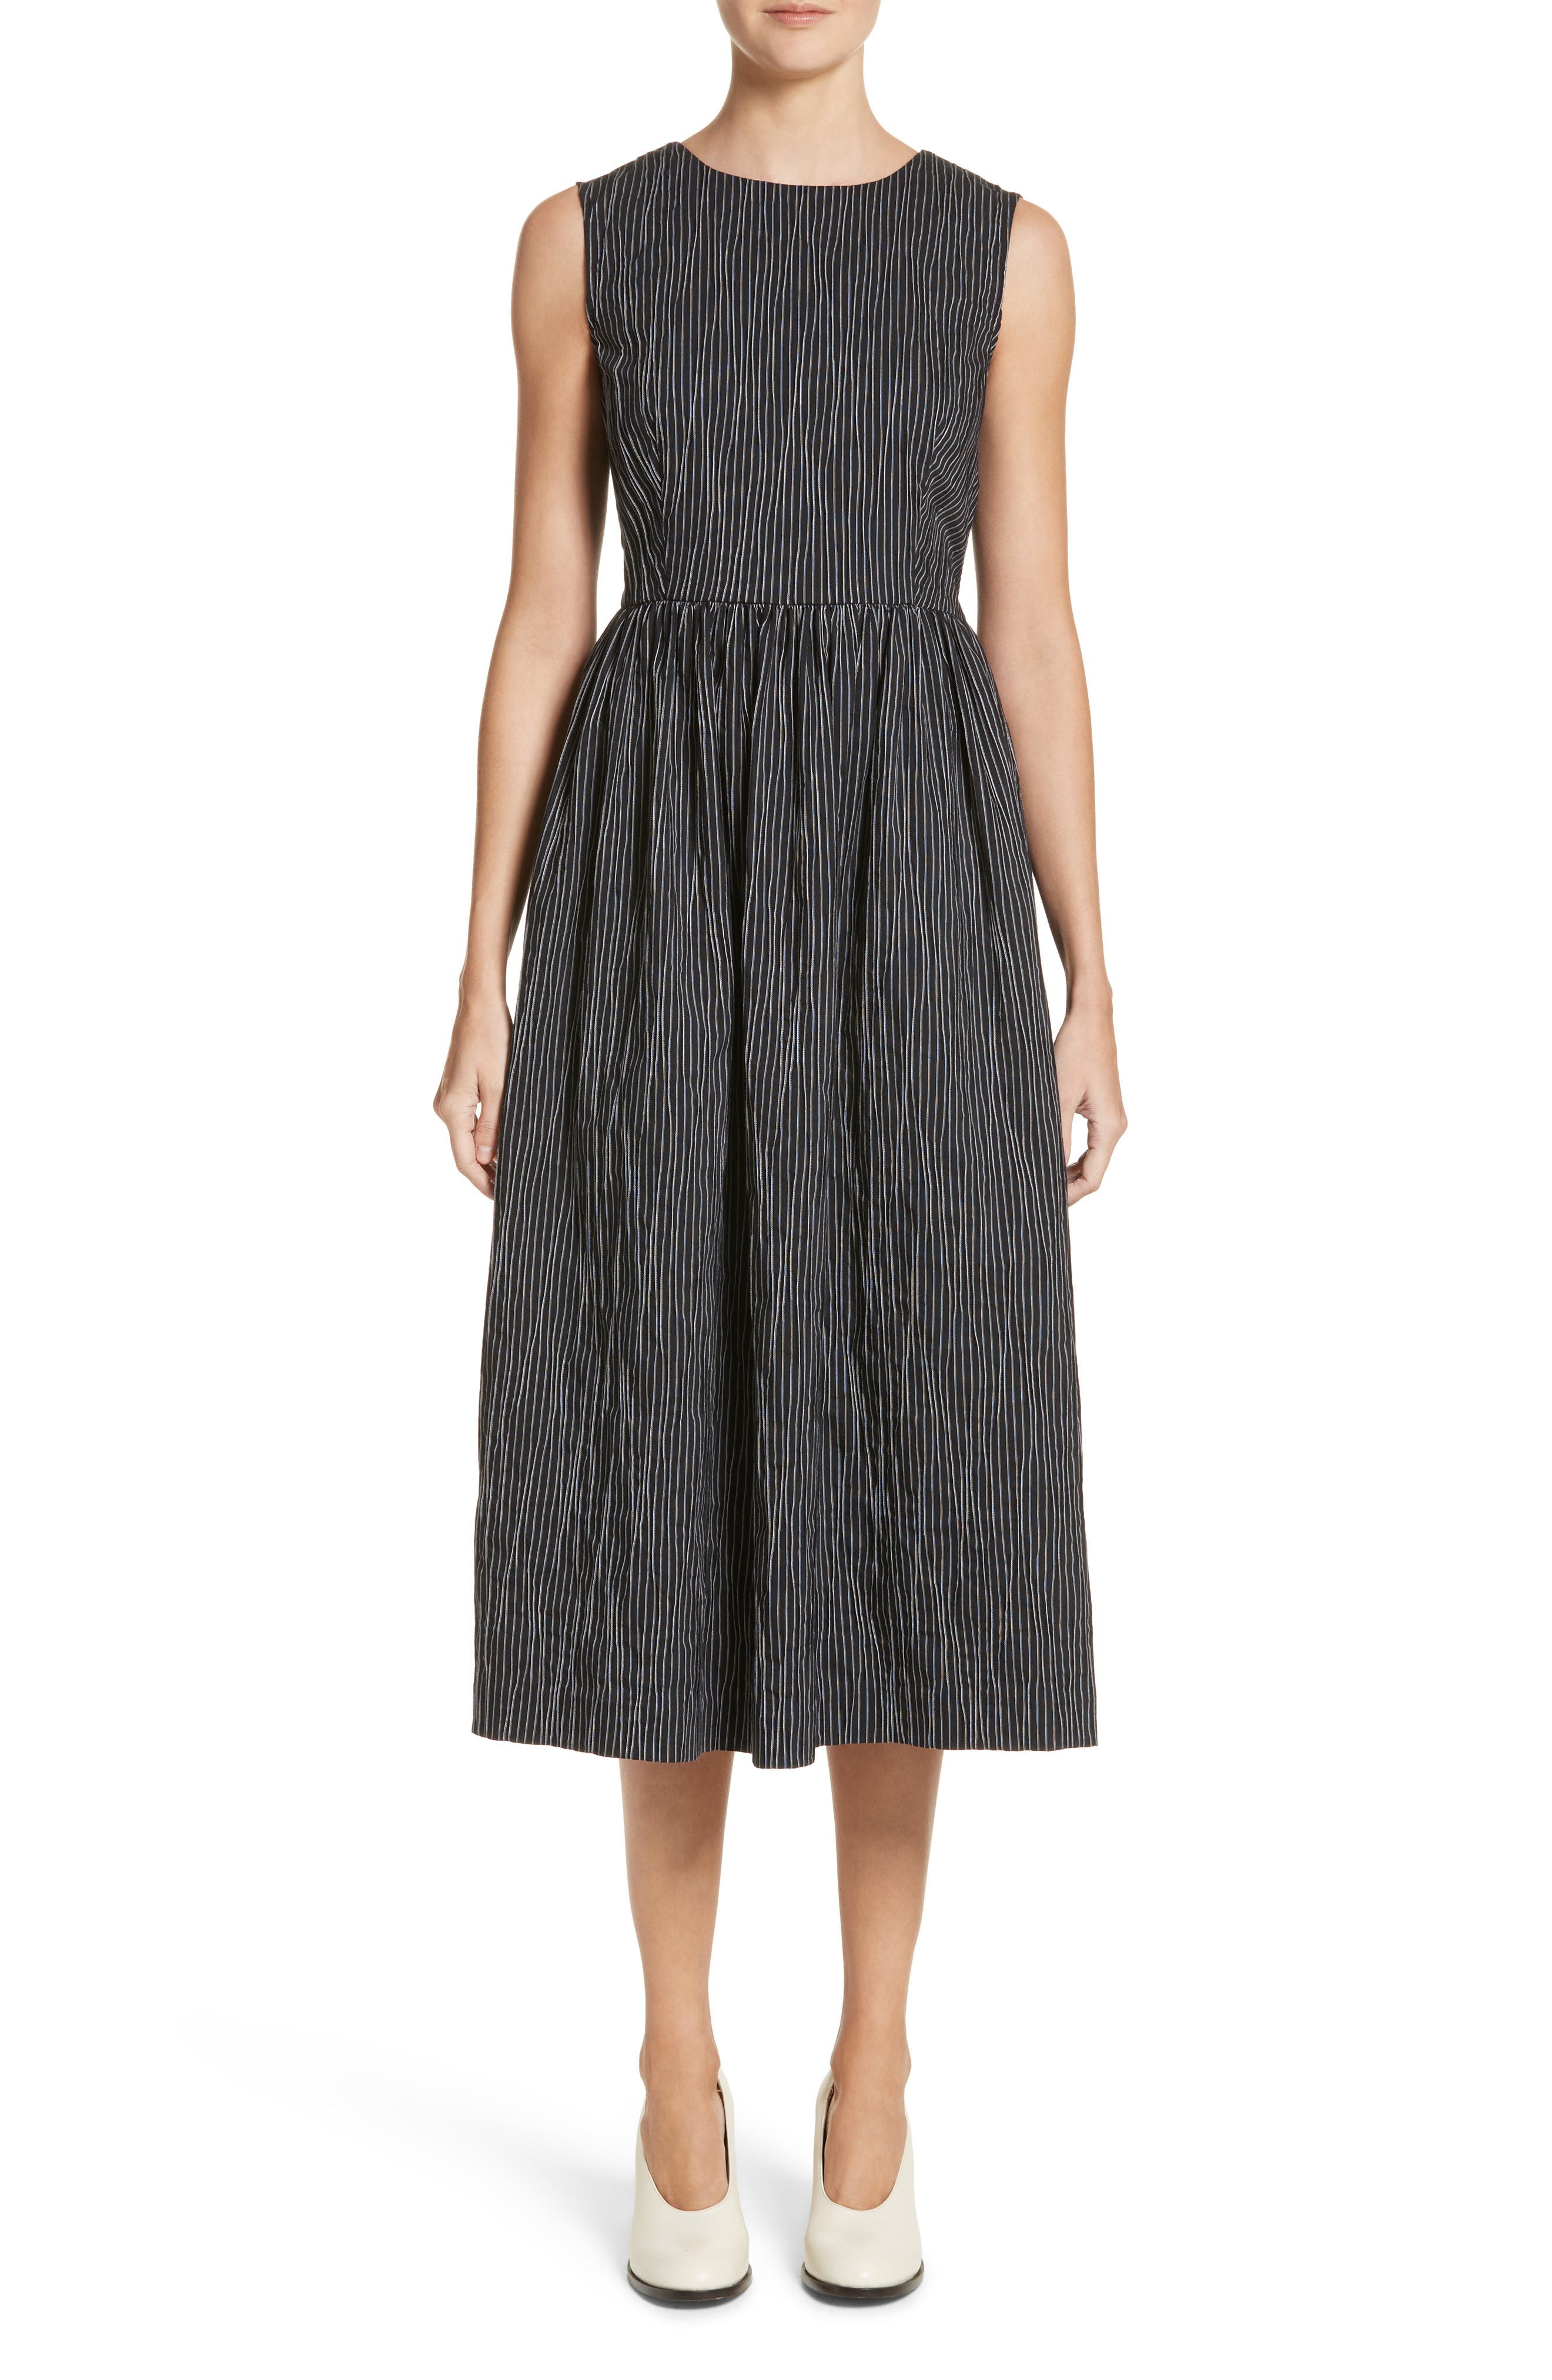 Stripe Crinkle Cotton Blend Midi Dress,                         Main,                         color, Black/ White Stripe